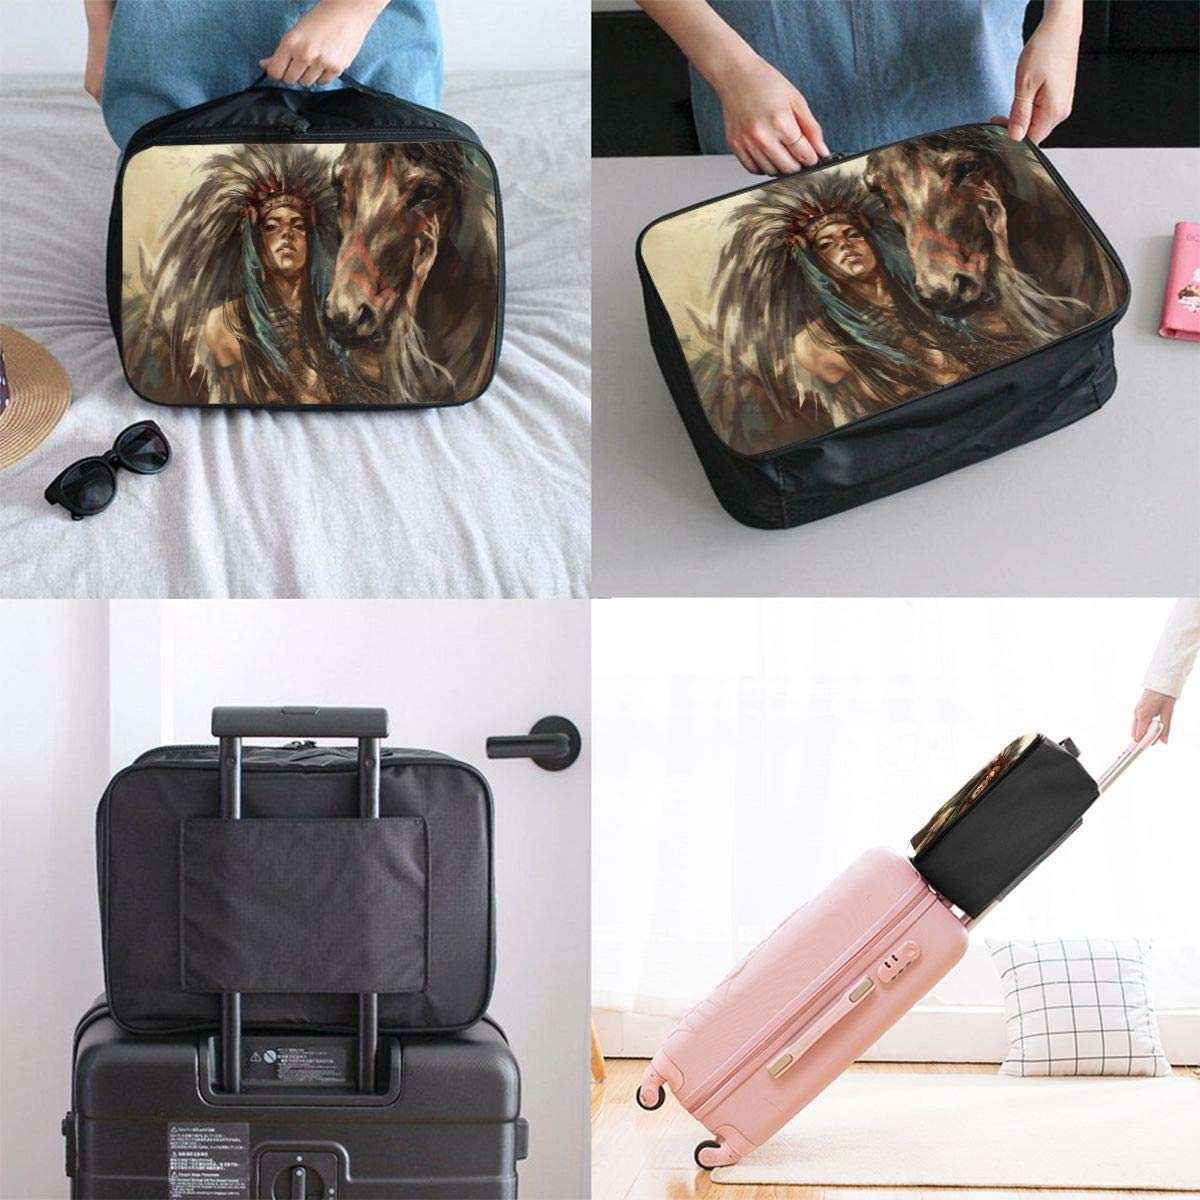 Native American Hunter And Horse Travel Lightweight Waterproof Folding Storage Carry Luggage Duffle Tote Bag Large Capacity In Trolley Handle Bags 6x11x15 Inch